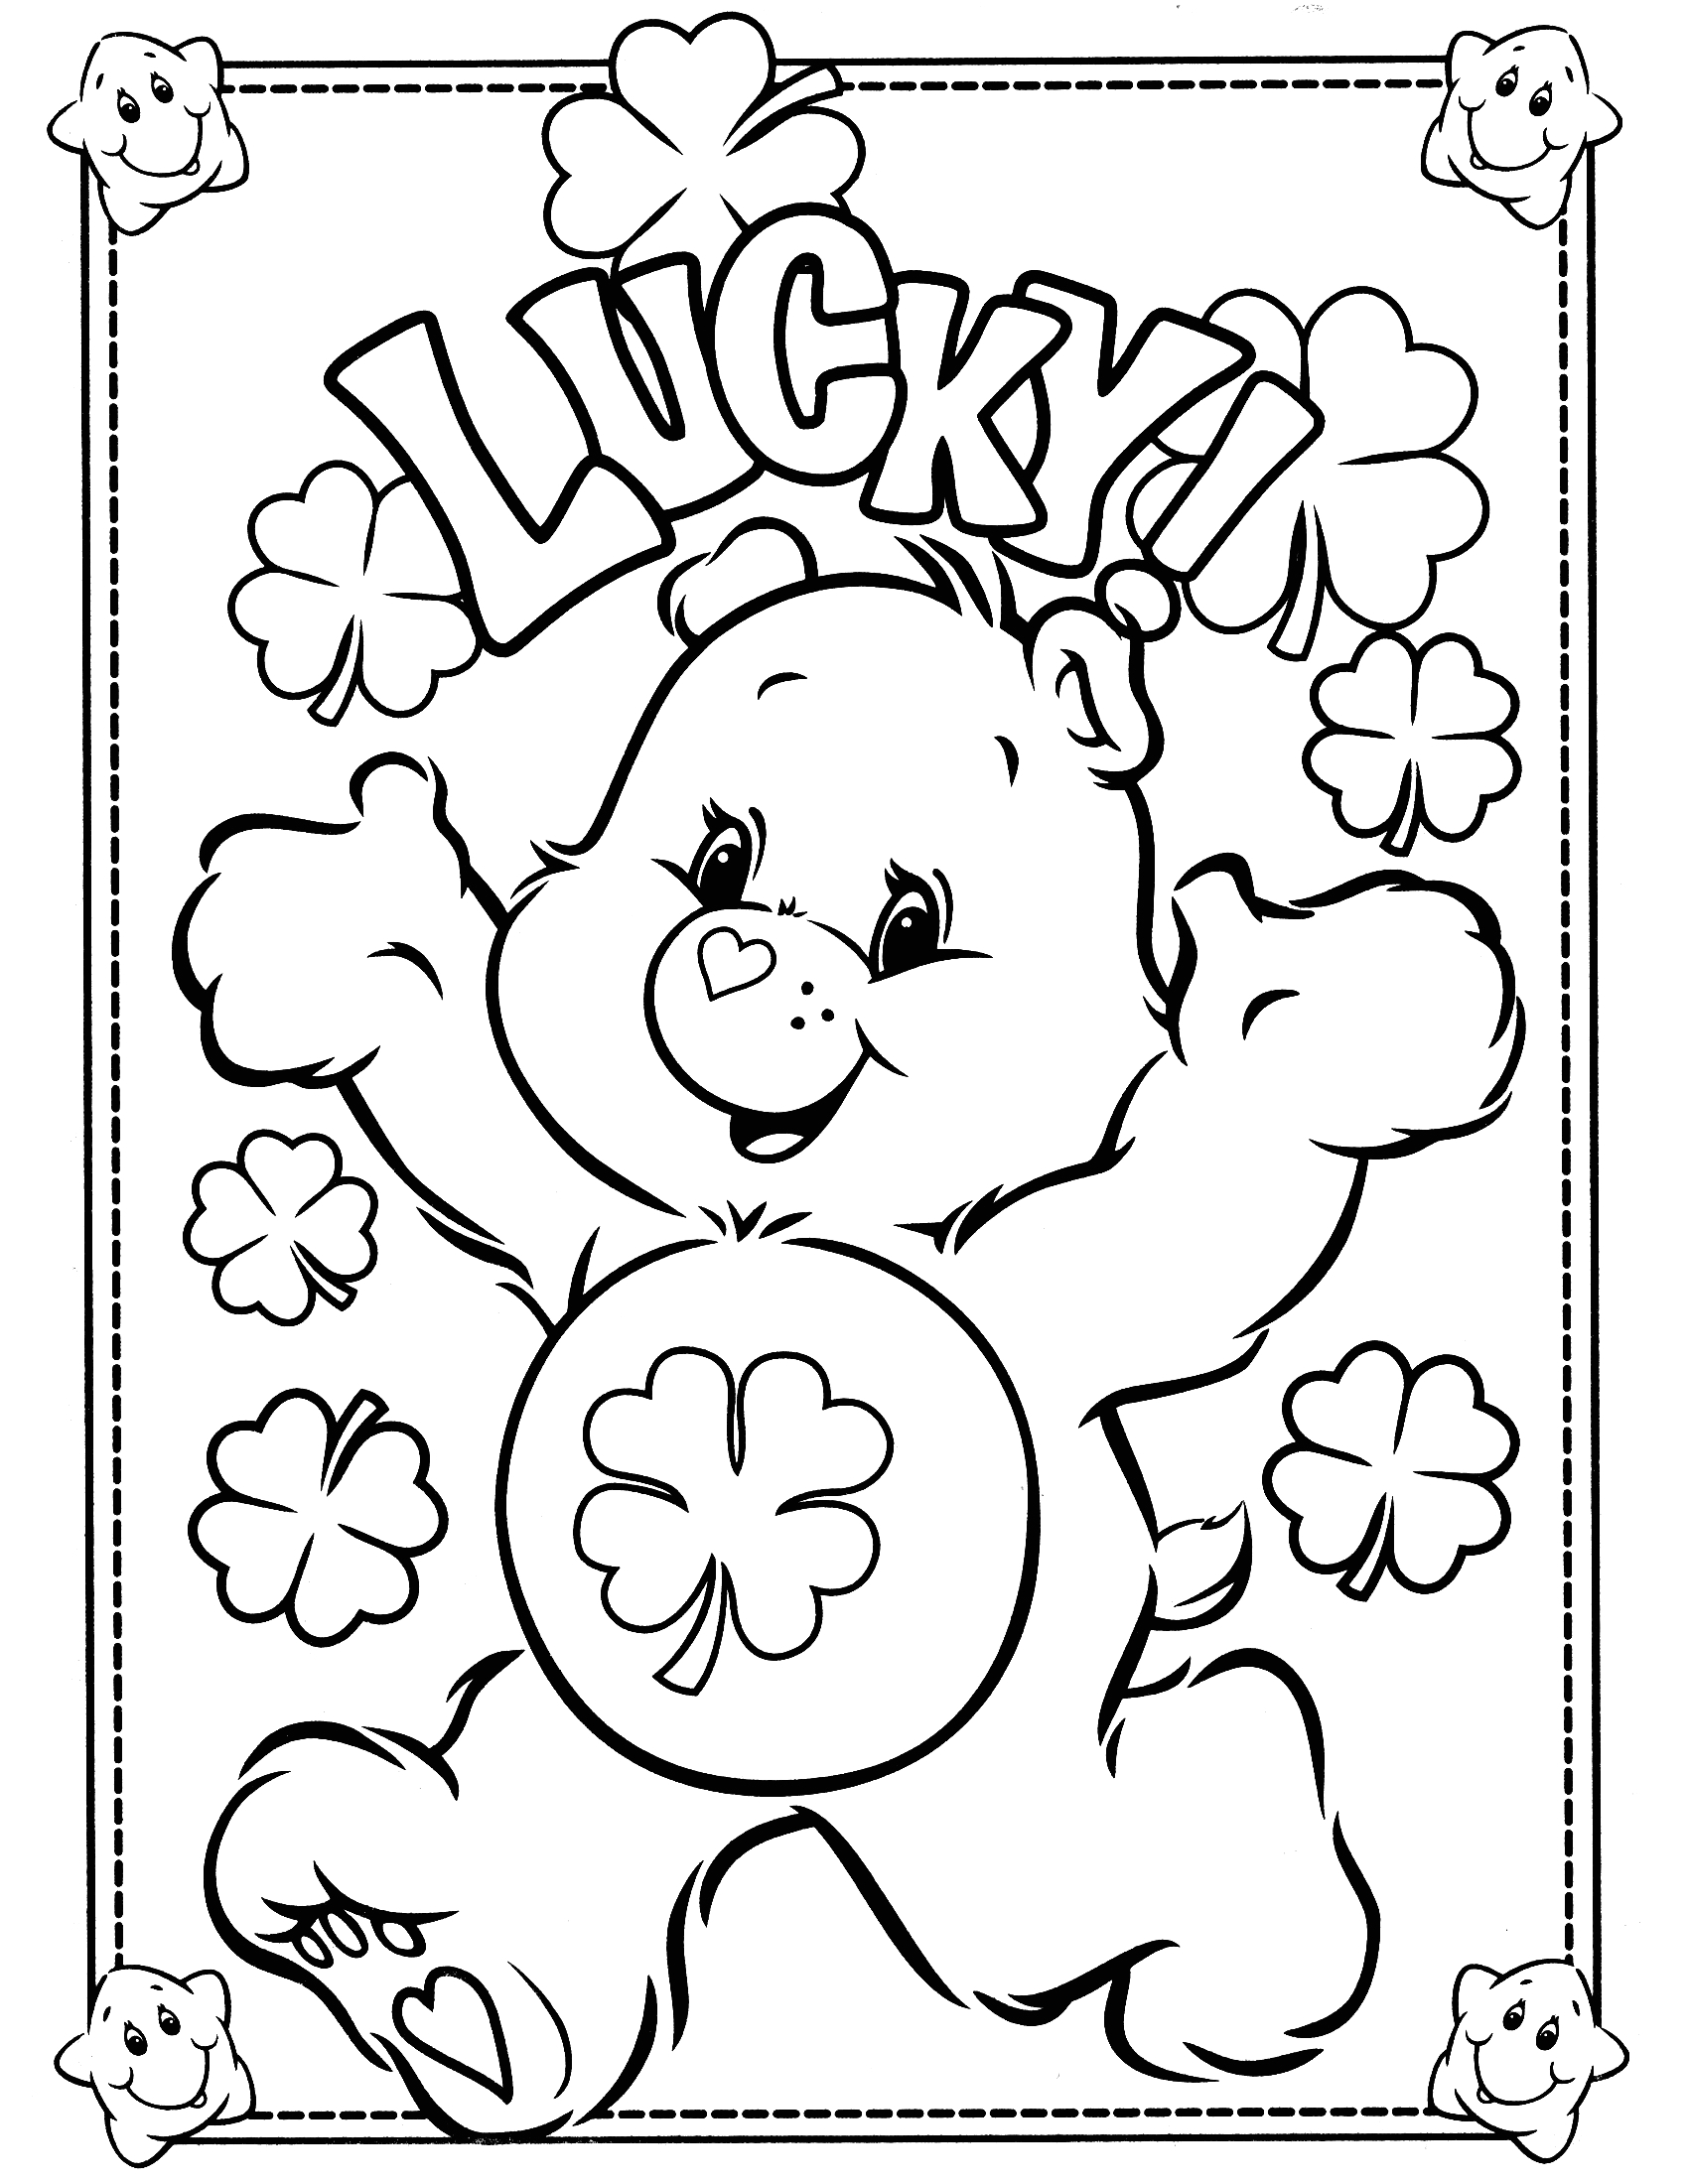 Free Care Bear Coloring Pages to Print Free Printable Care Bear Coloring Pages for Kids